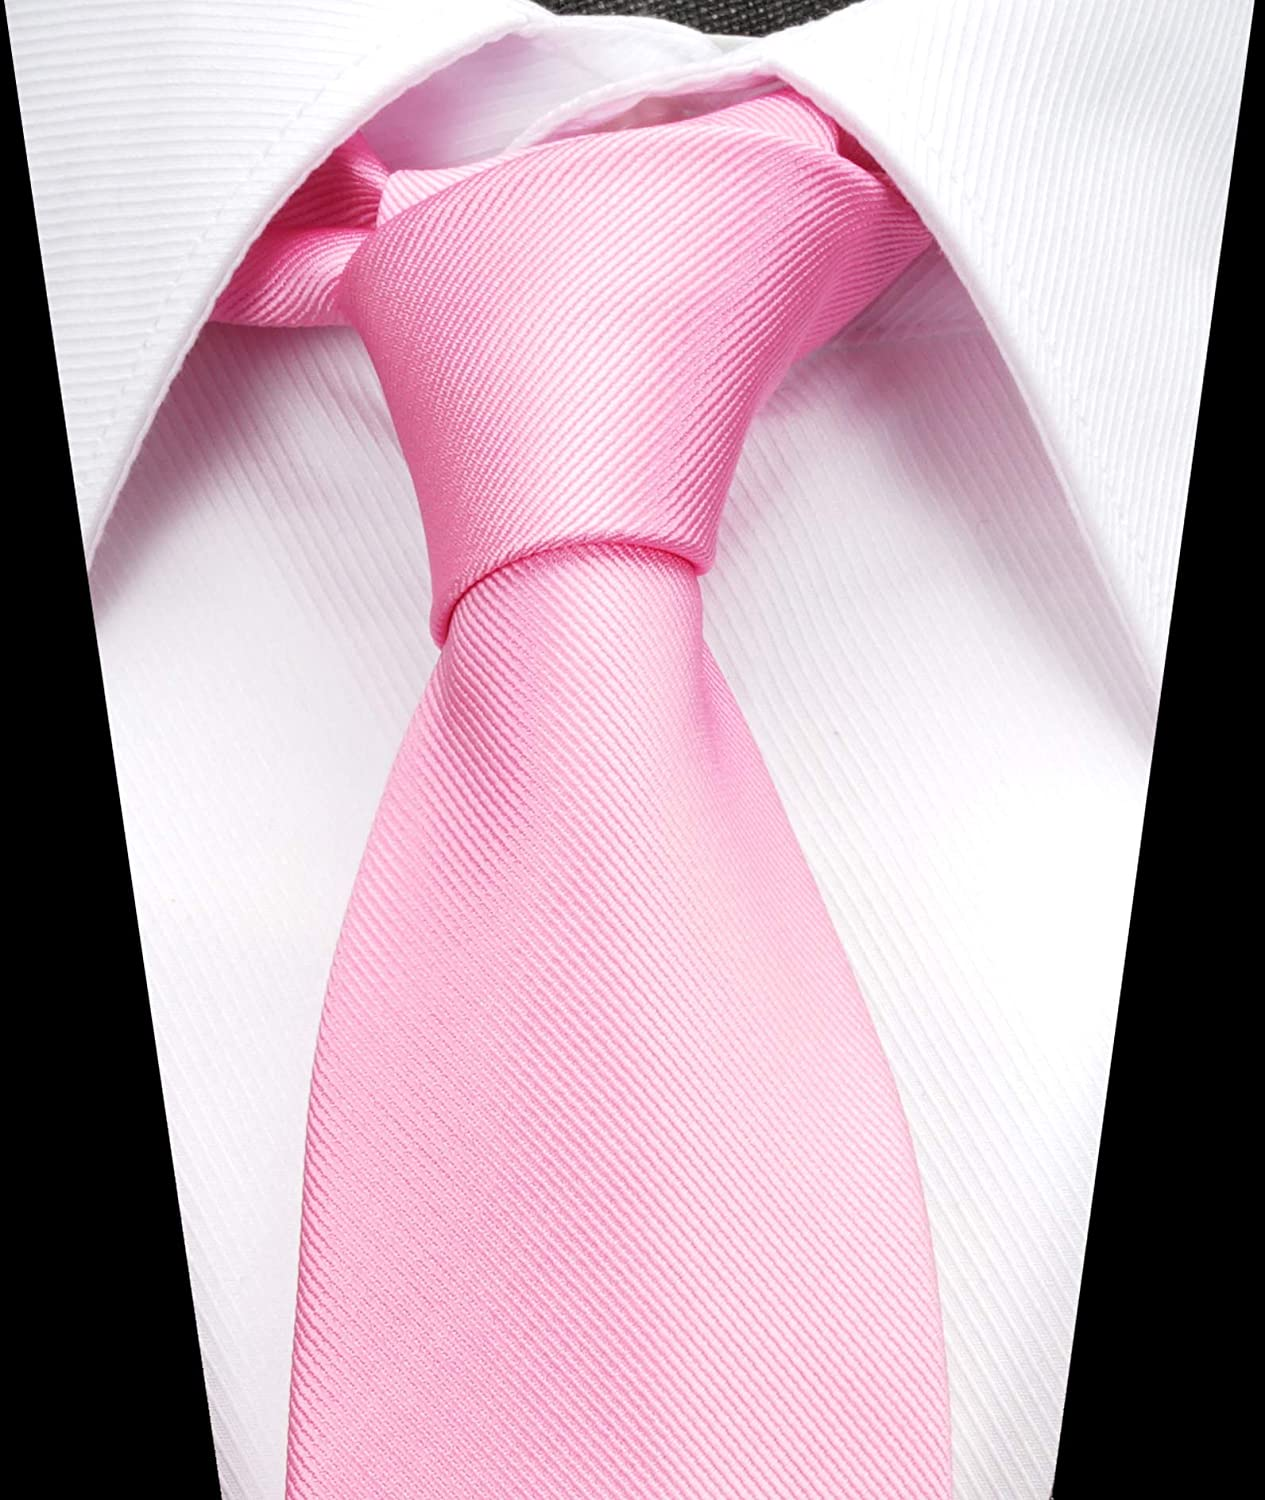 Solid Color Boys Tie Children and Teens Skinny Necktie 2.5 inches